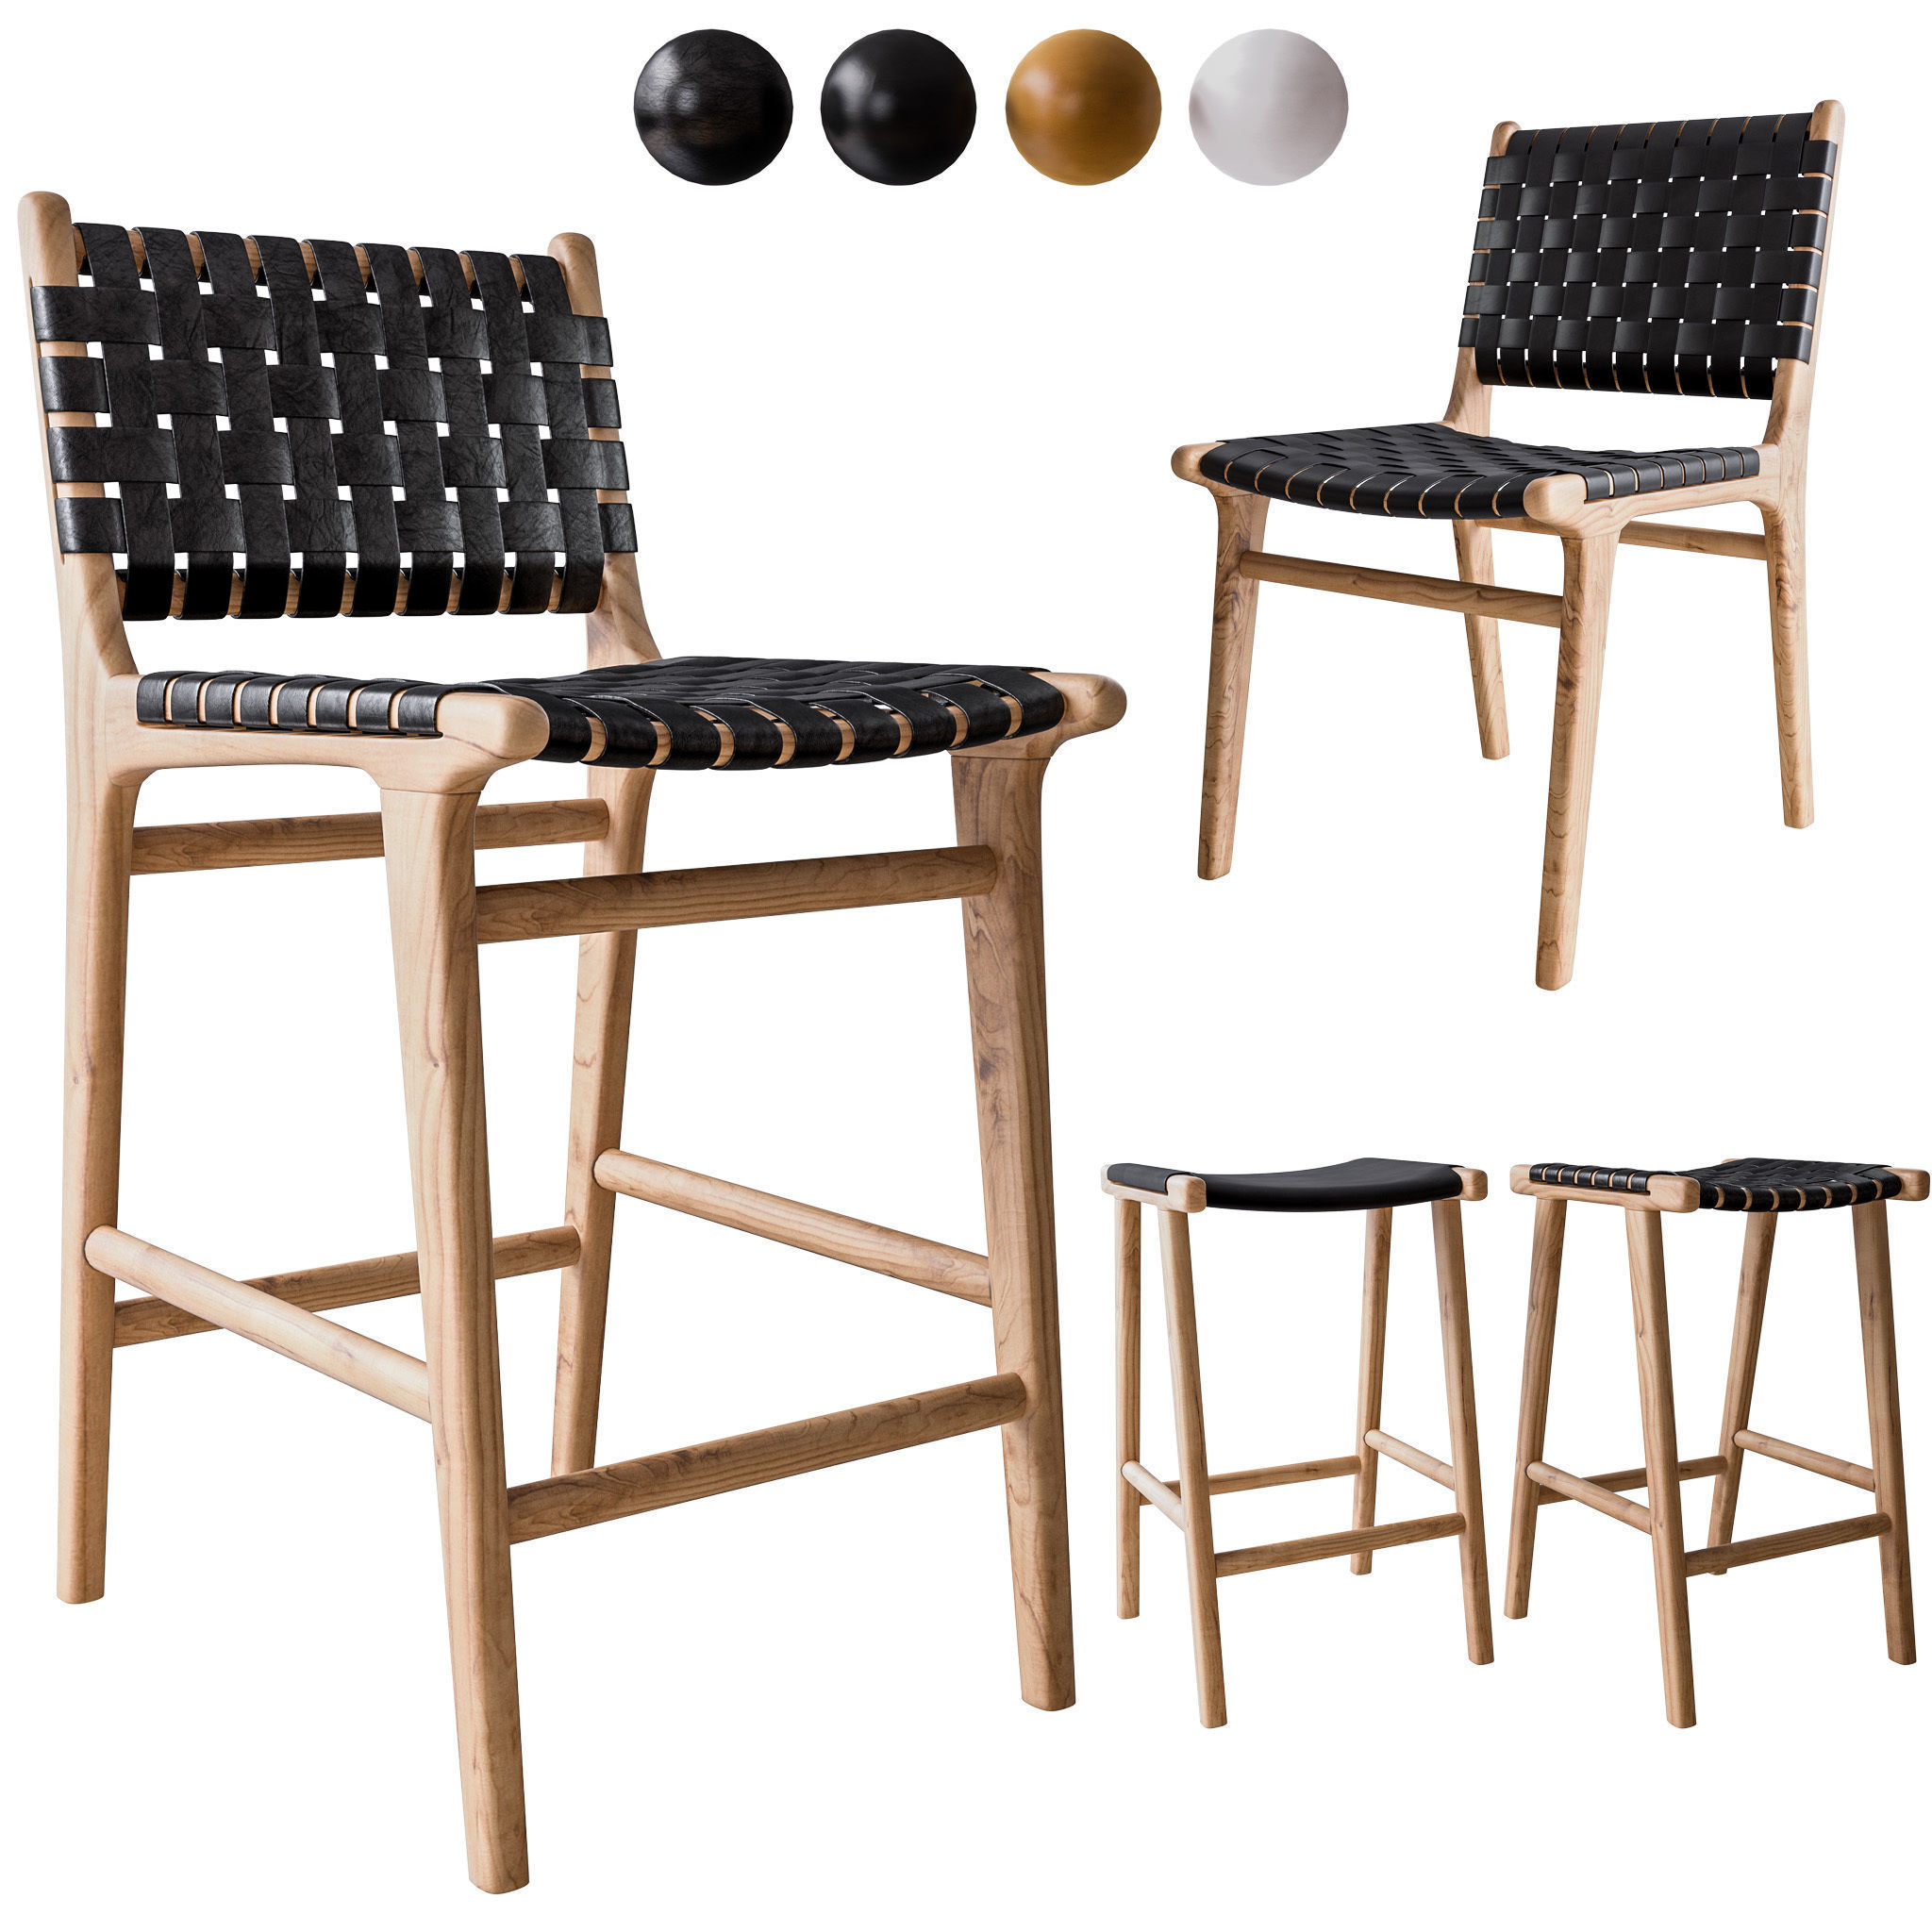 Peachy Flat And Leather Strapping Dining Chair And Stools 3D Model Gmtry Best Dining Table And Chair Ideas Images Gmtryco